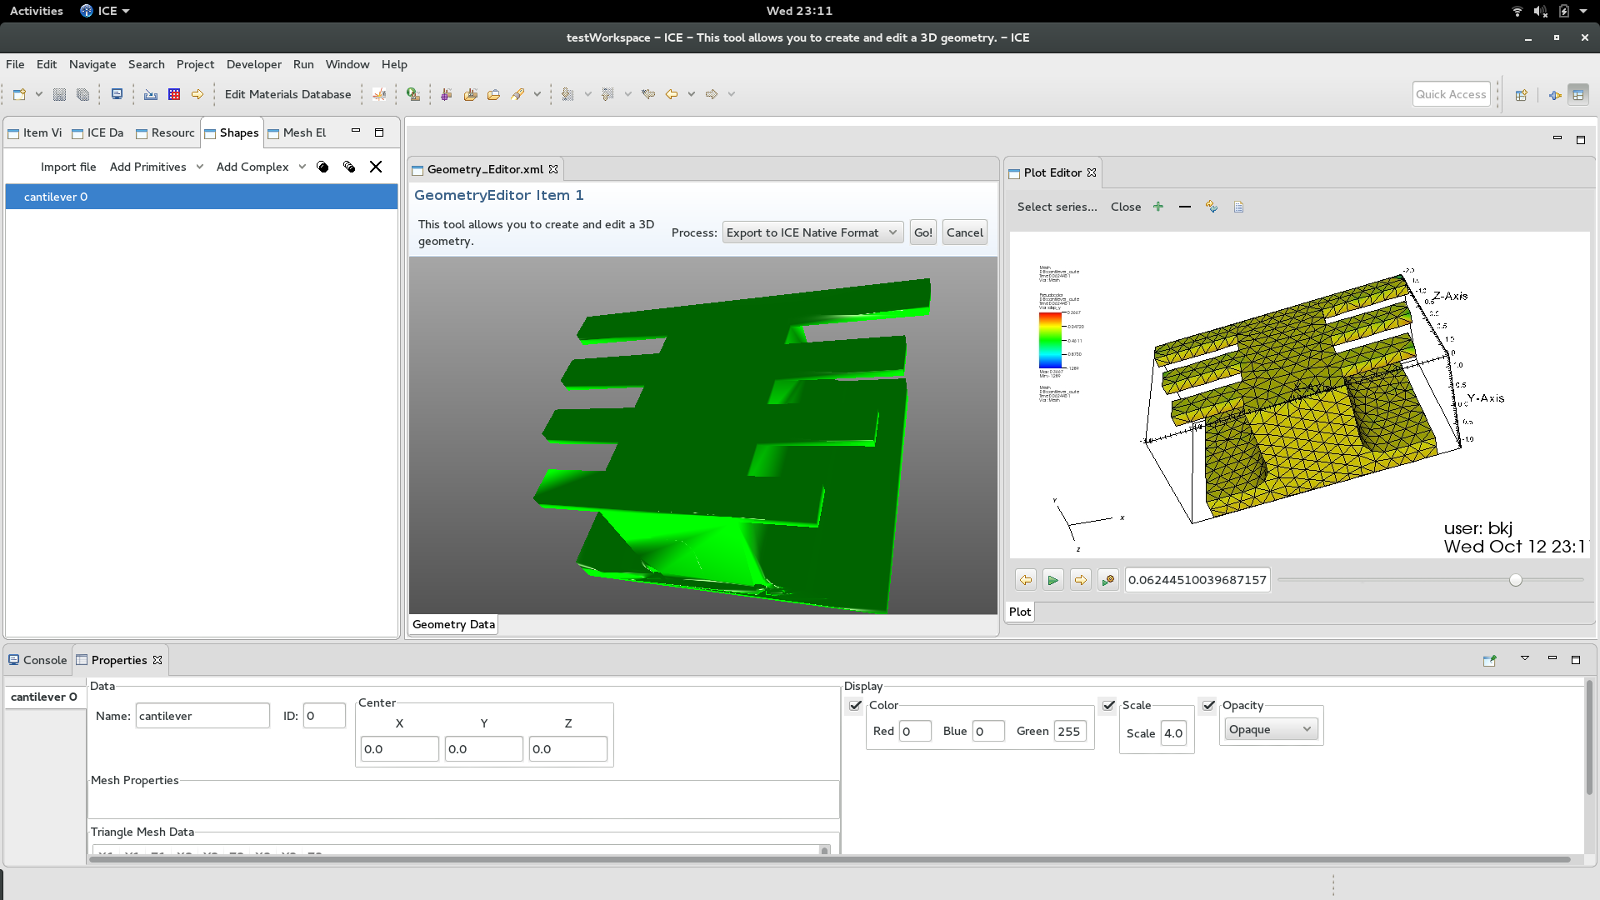 Modeling and Simulation with Eclipse ICE and EAVP | The